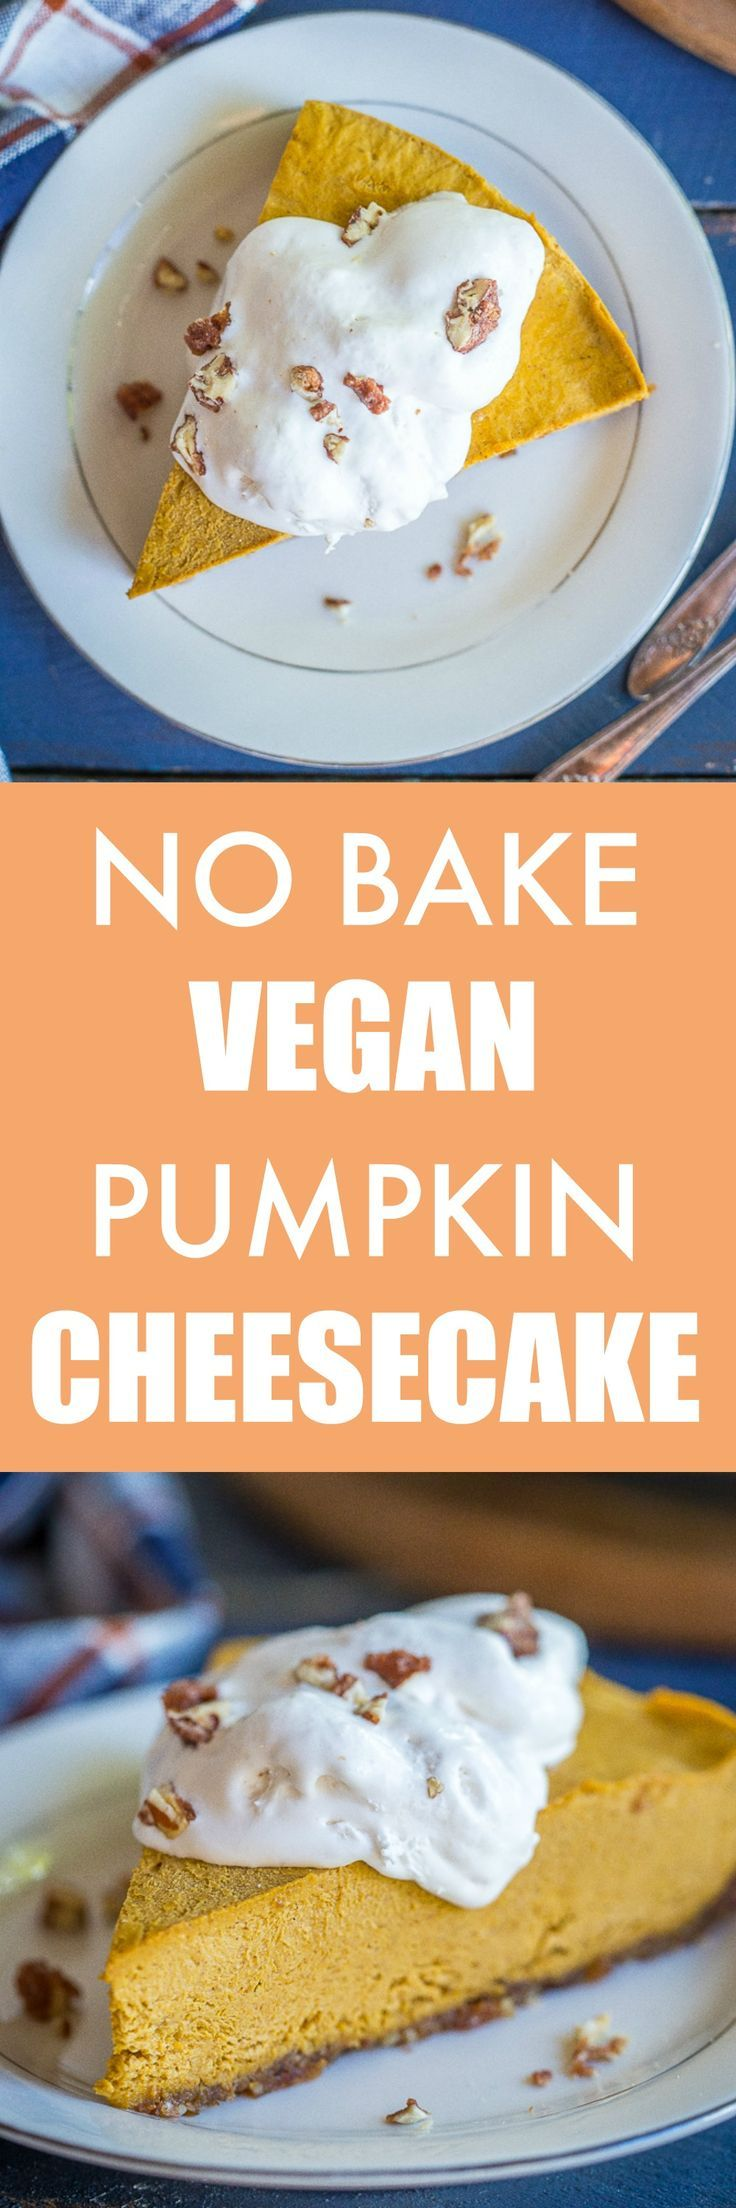 This No Bake Vegan Pumpkin Cheesecake is so flavorful and creamy!  It's easy to make and perfect for a holiday dessert!  #vegan #glutenfree #dessert #pumpkin #thanksgiving